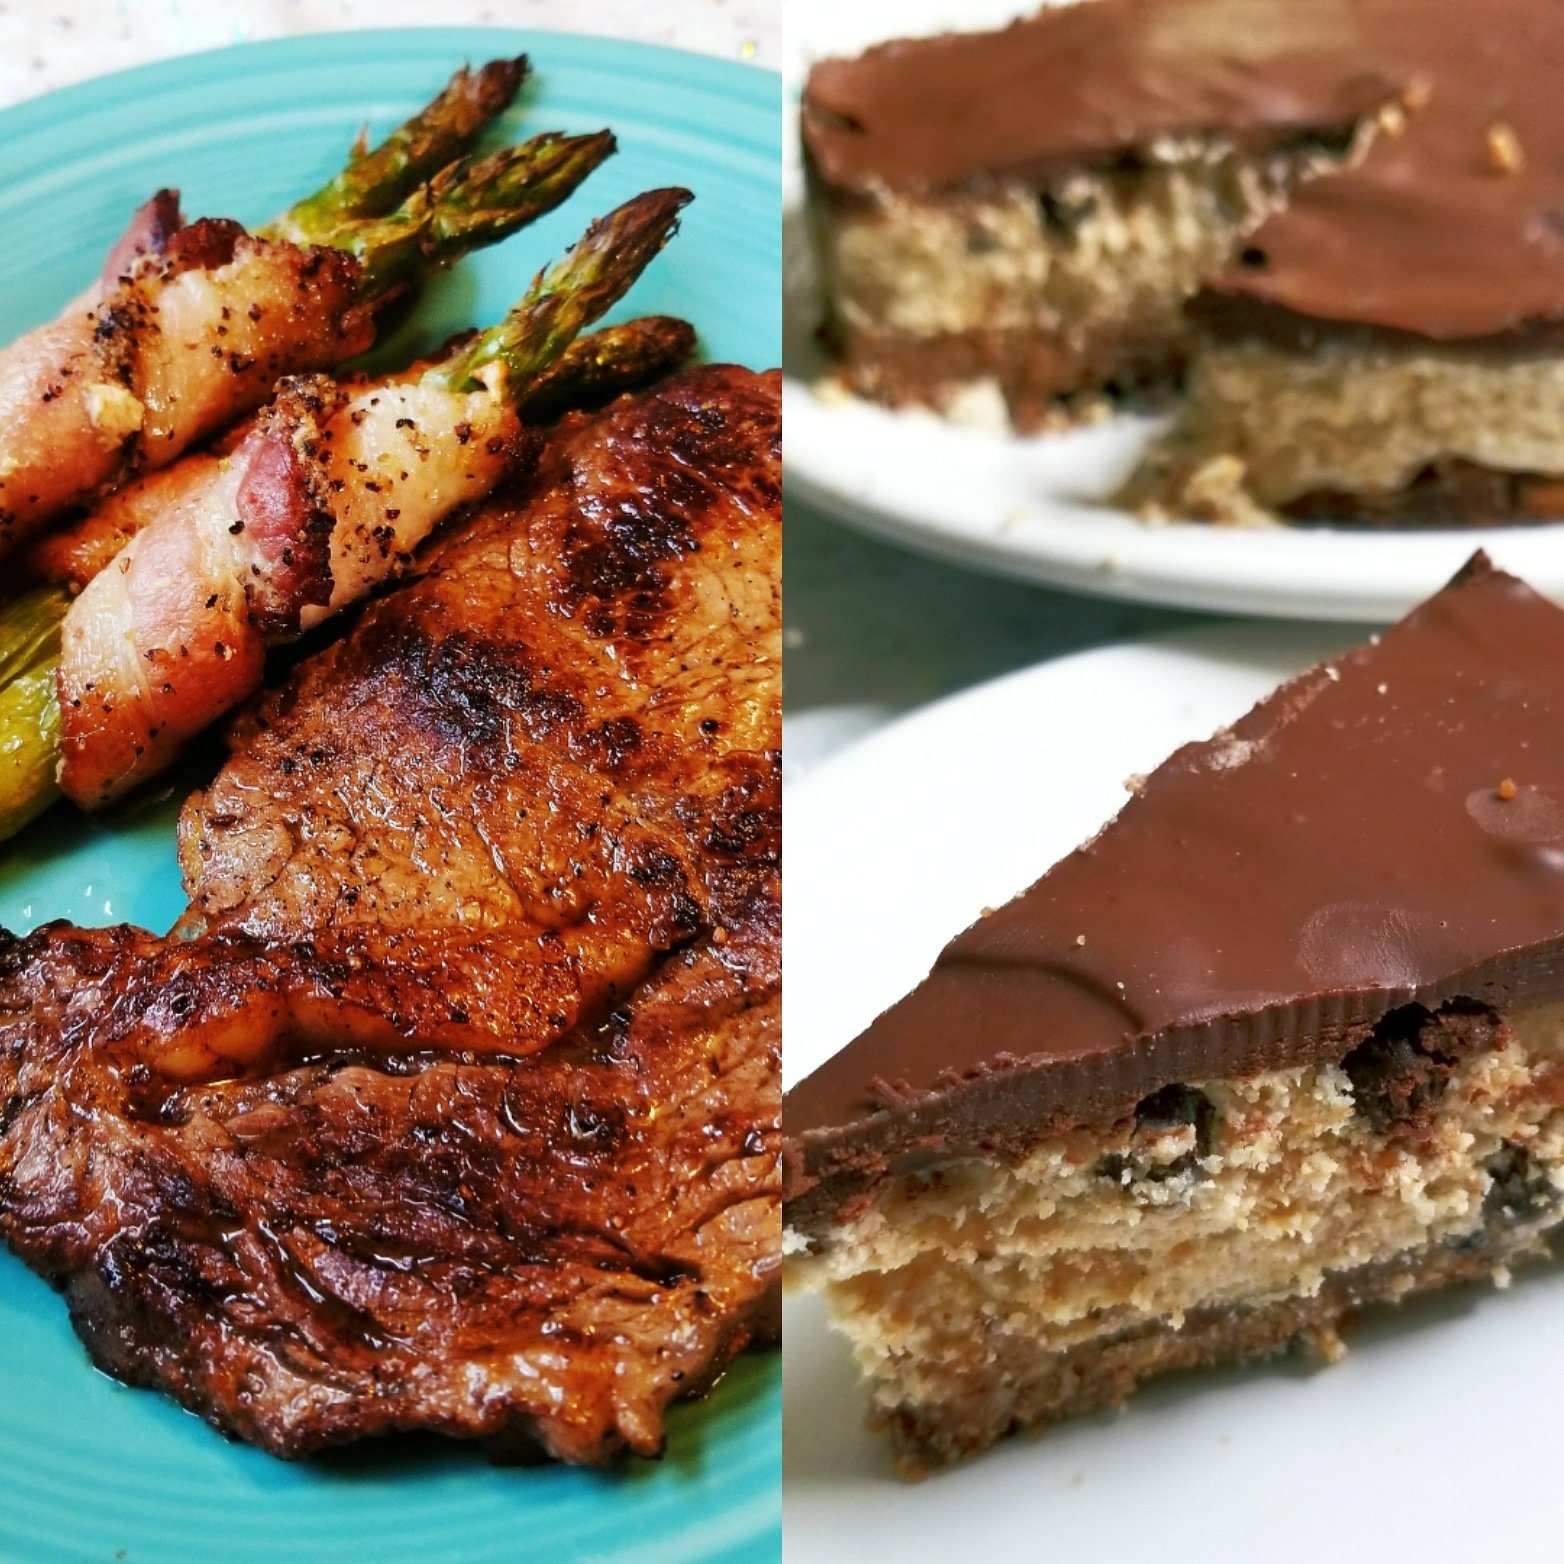 img 20180902 065027 5461989910428 - Paleo & Vegan Cookie Dough Cheesecake and Sesame Ginger Ribeye Steaks (Gluten-Free) Saturday Cooking Adventures